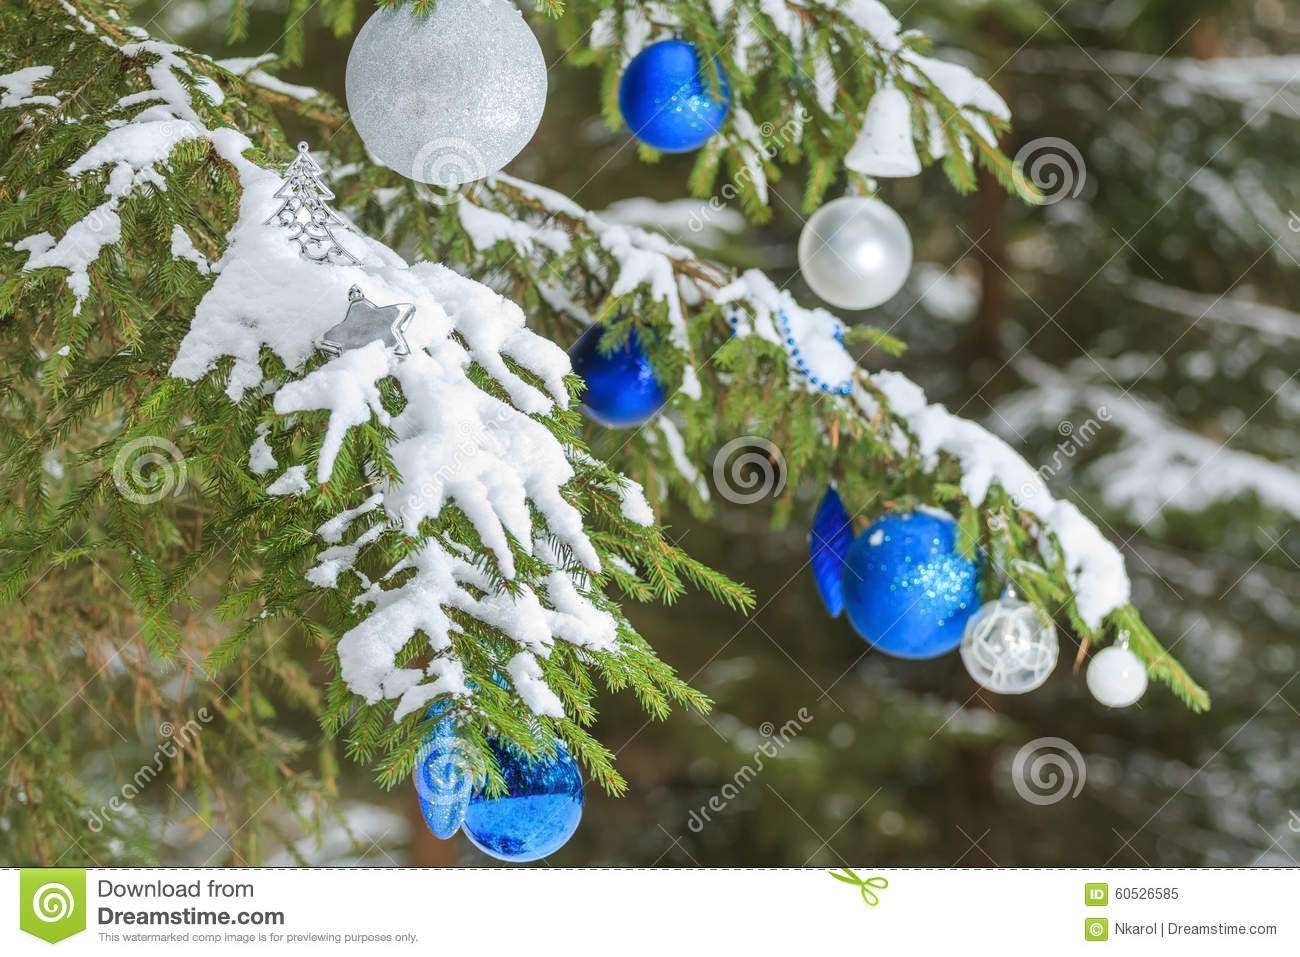 Outside ornaments - Christmas Festive Glitter Baubles Silver And Blue Ornaments Outside On Snowy Spruce Branches